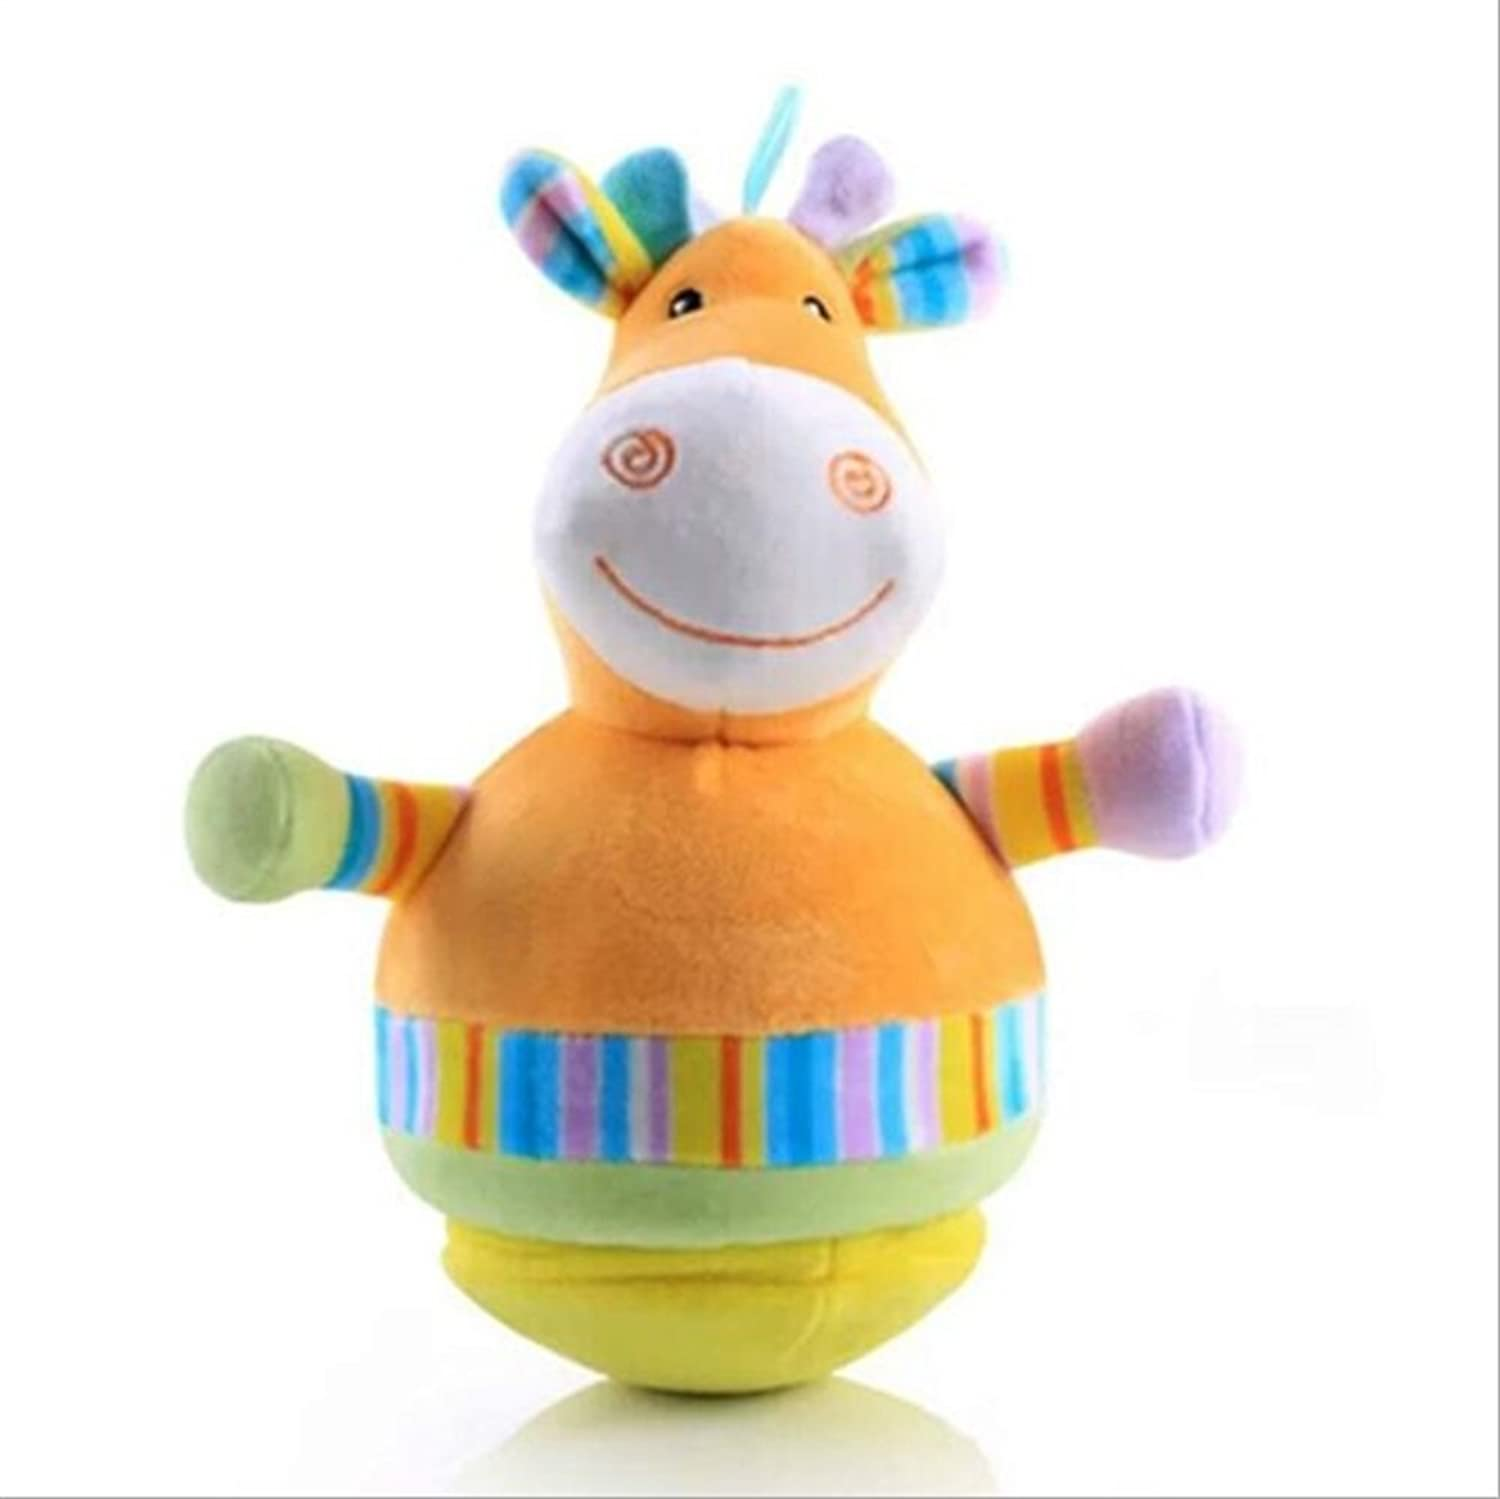 Baby Novelty Toy Adorable Elephant colorful Soft Hand Rattles Crawling Kids Bell Ball Toy Gift(Giraffe)